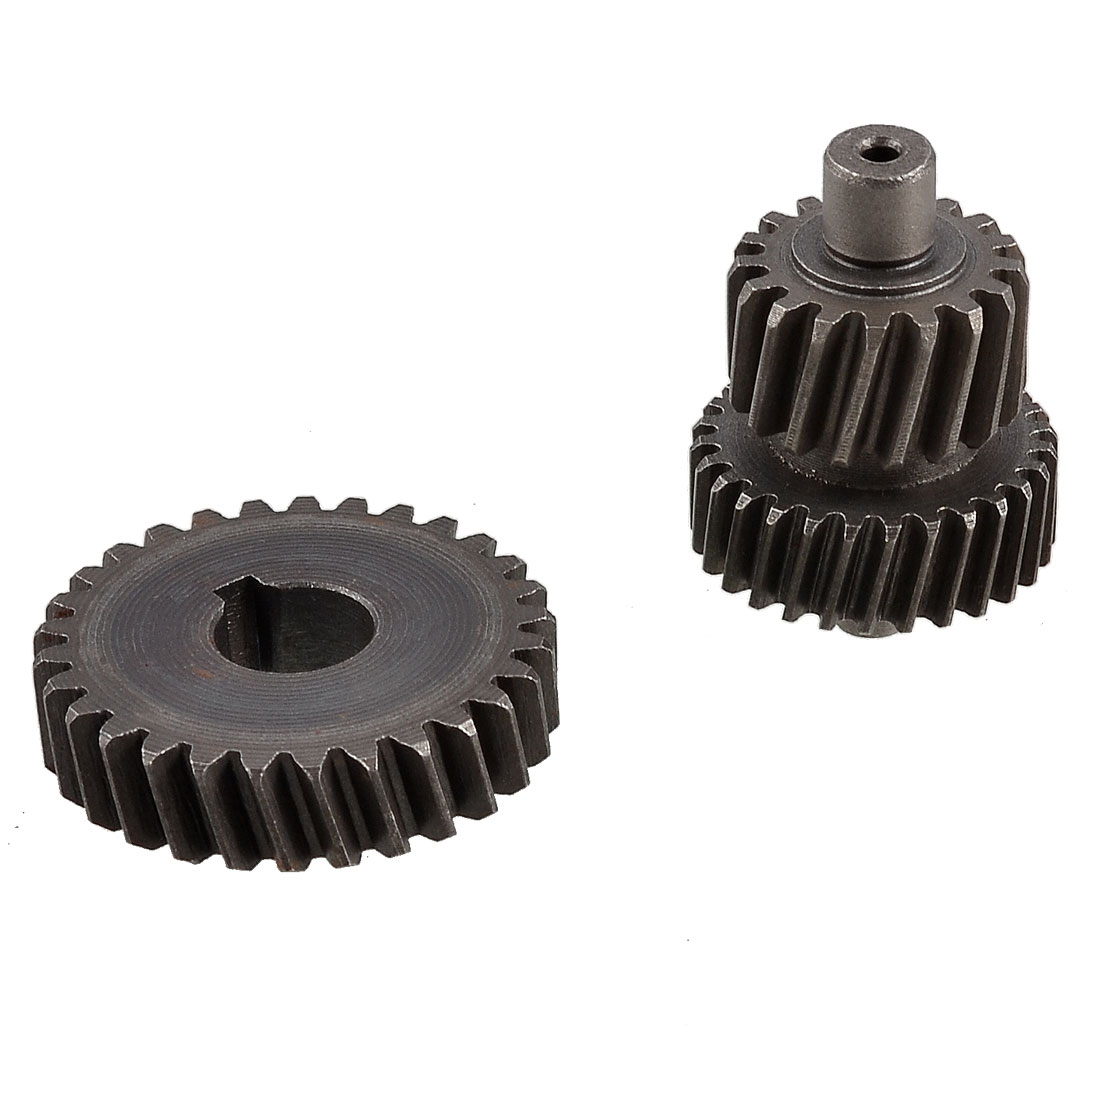 2.5 Type 29 Teeth Ring Gear Spiral Bevel Pinion for Electric Machine